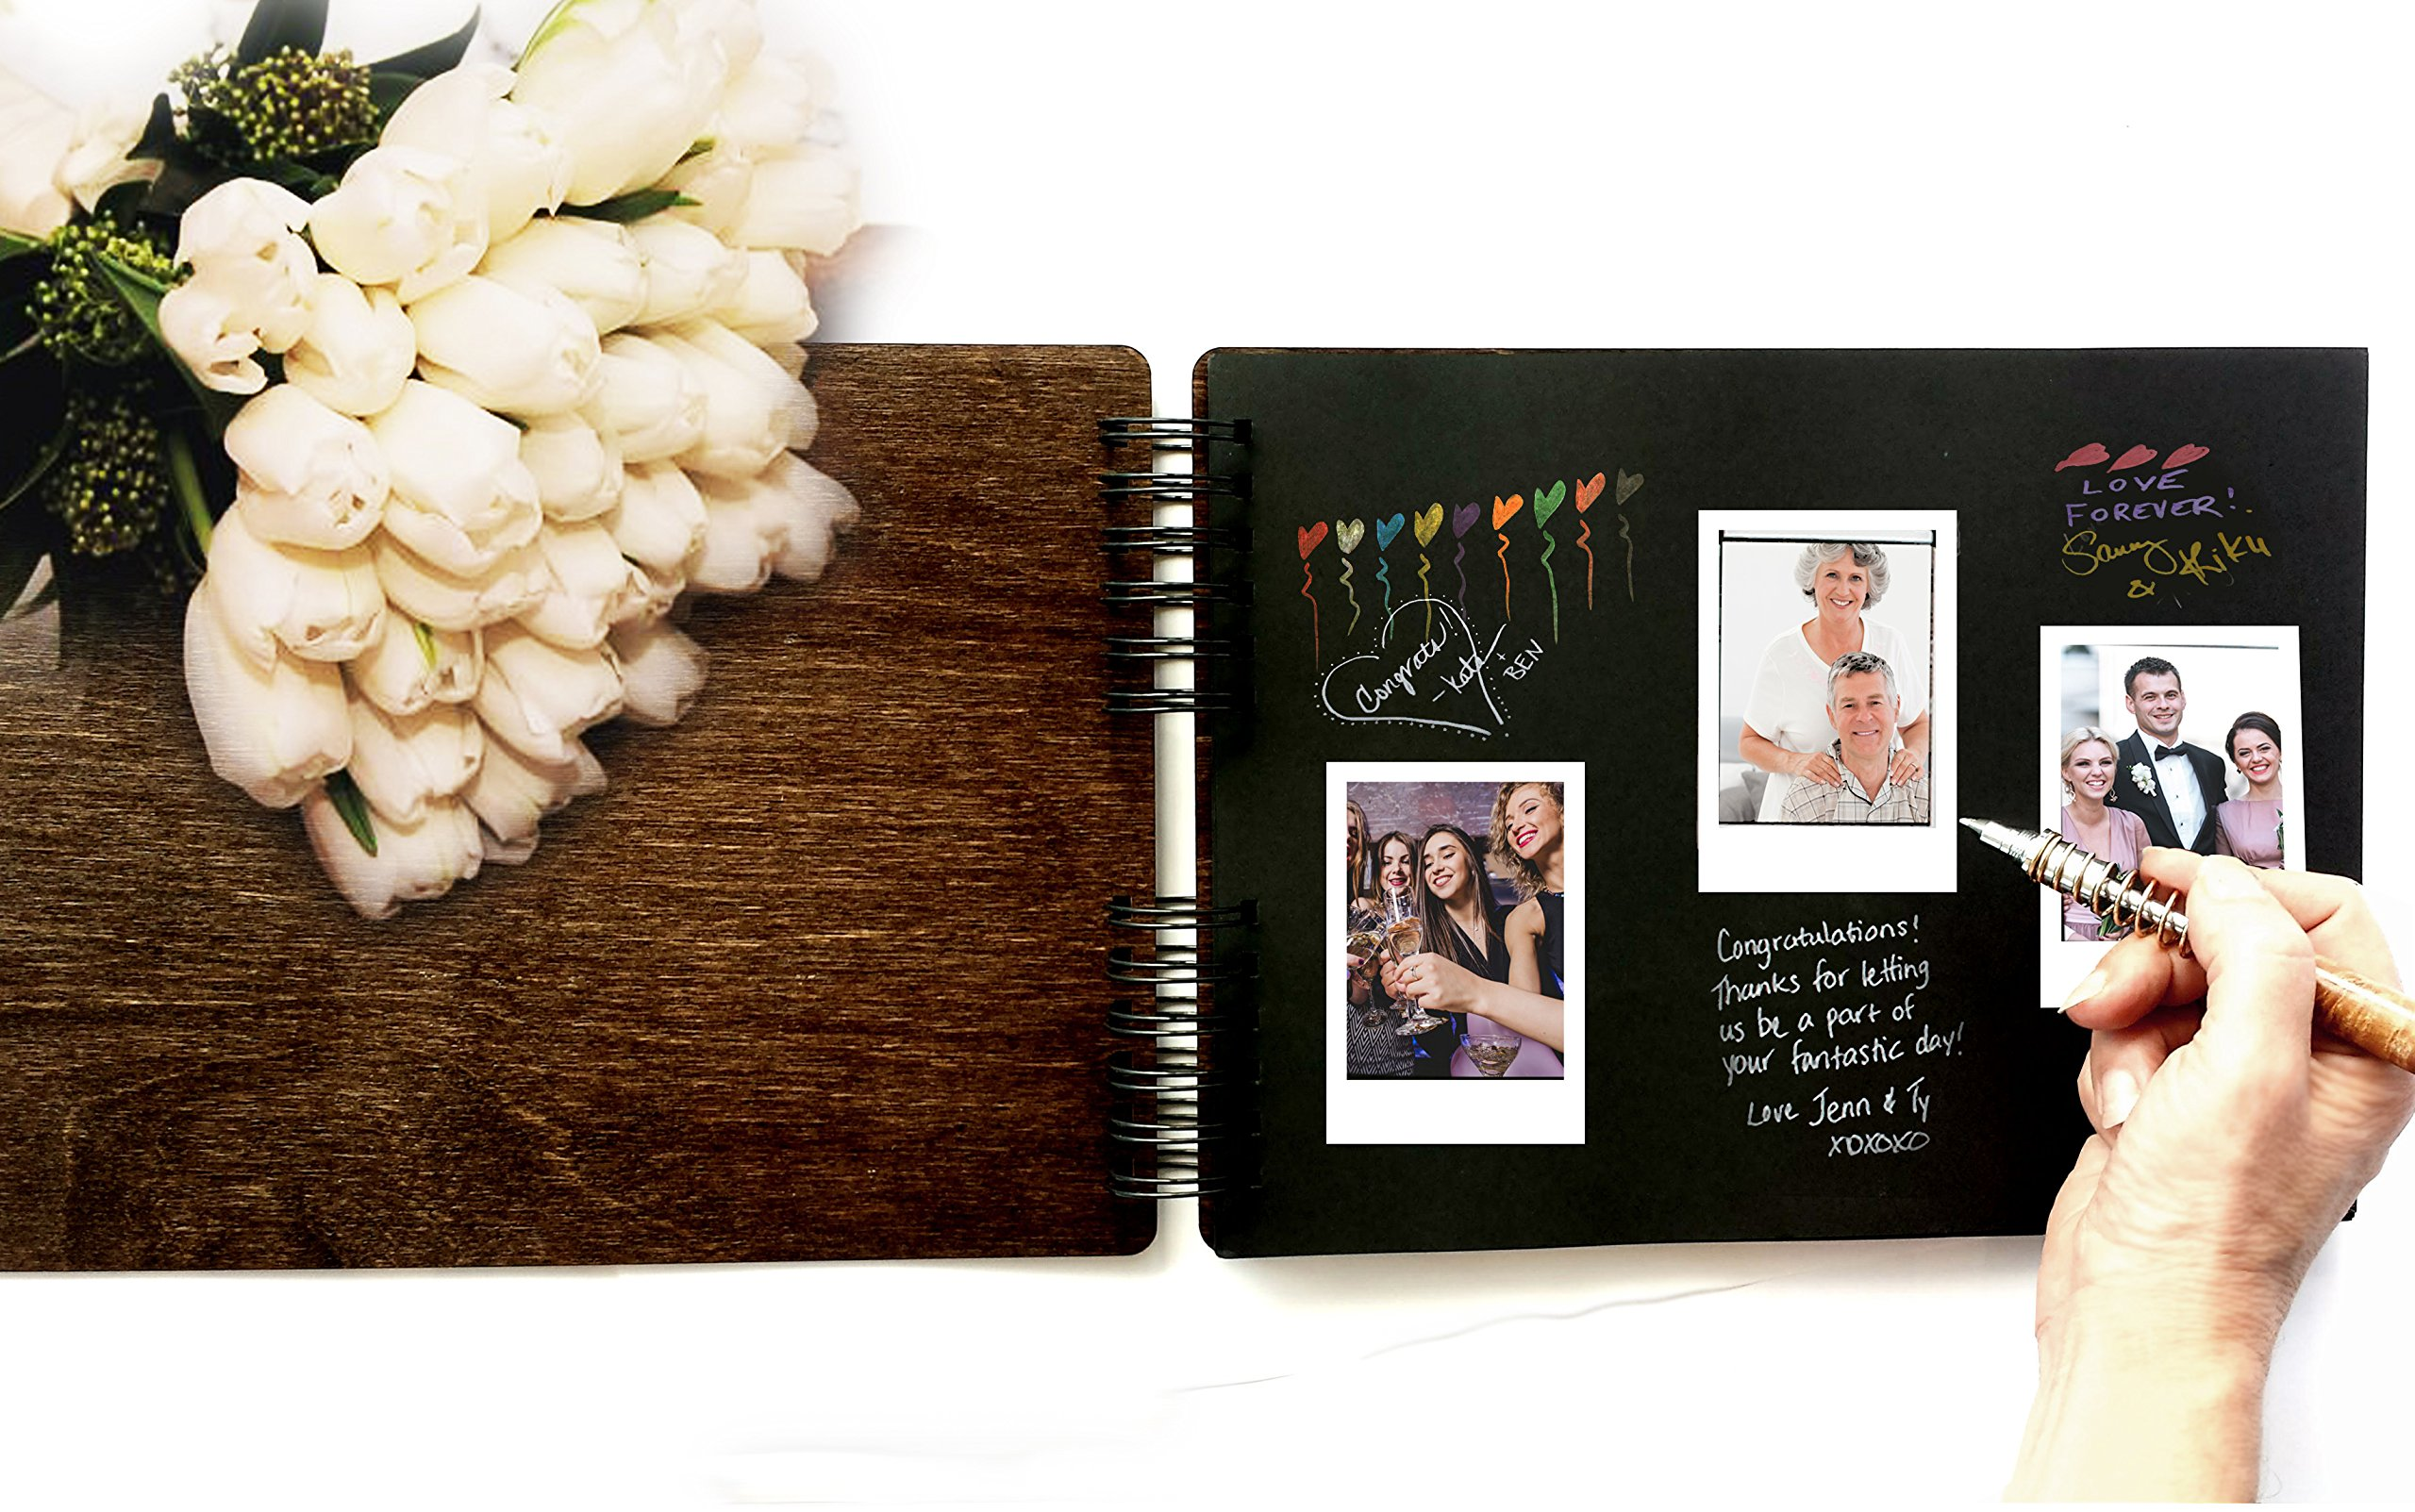 Wooden Rustic Guest Book 11'' x 8.5'' : Made in USA (All Black Cardstock Inside Pages, Front Cover GUESTBOOK Engraved) by Personalize It (Image #3)